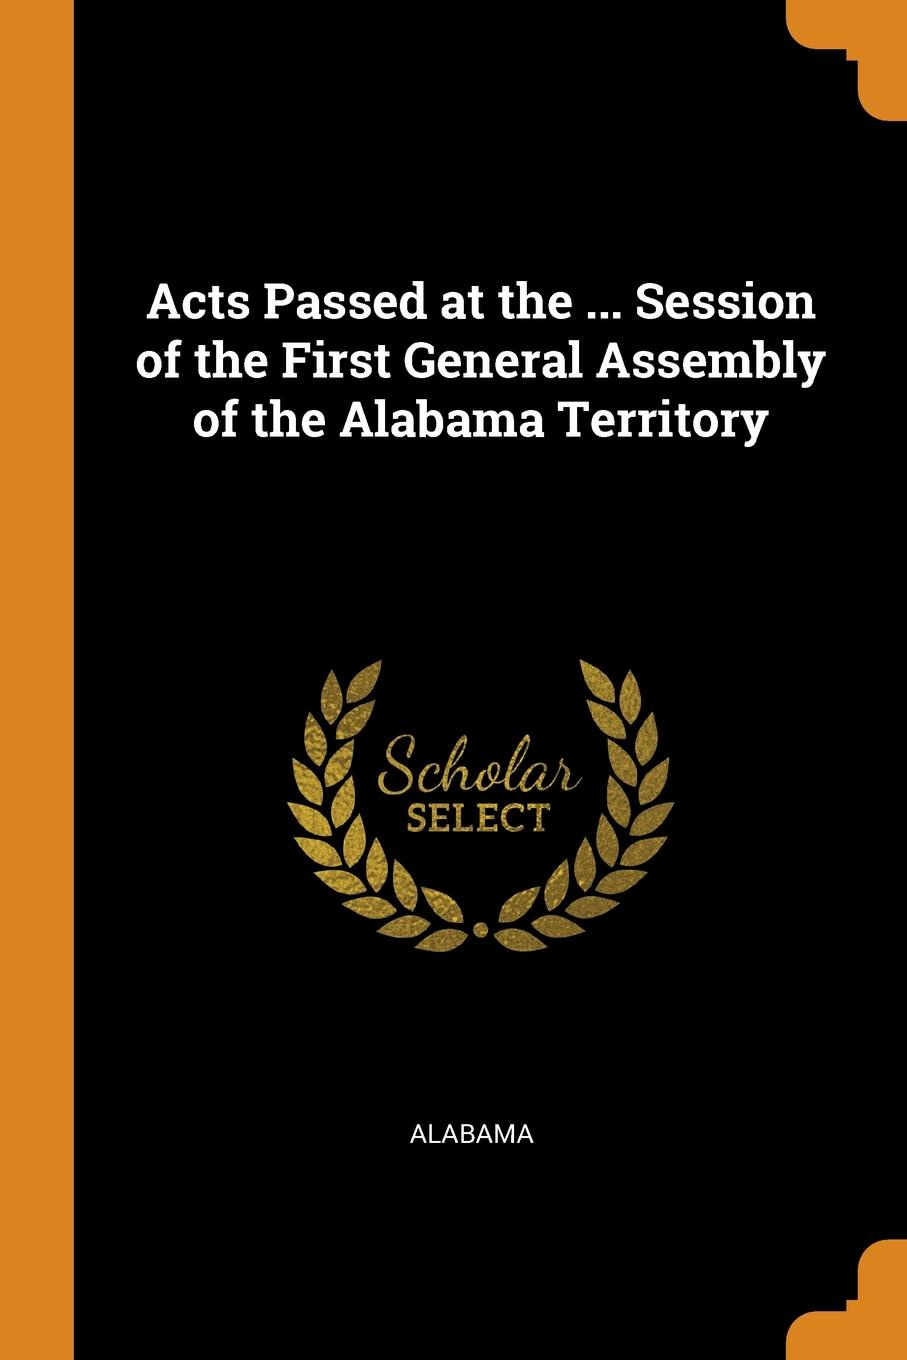 Acts Passed at the ... Session of the First General Assembly of the Alabama Territory. Alabama